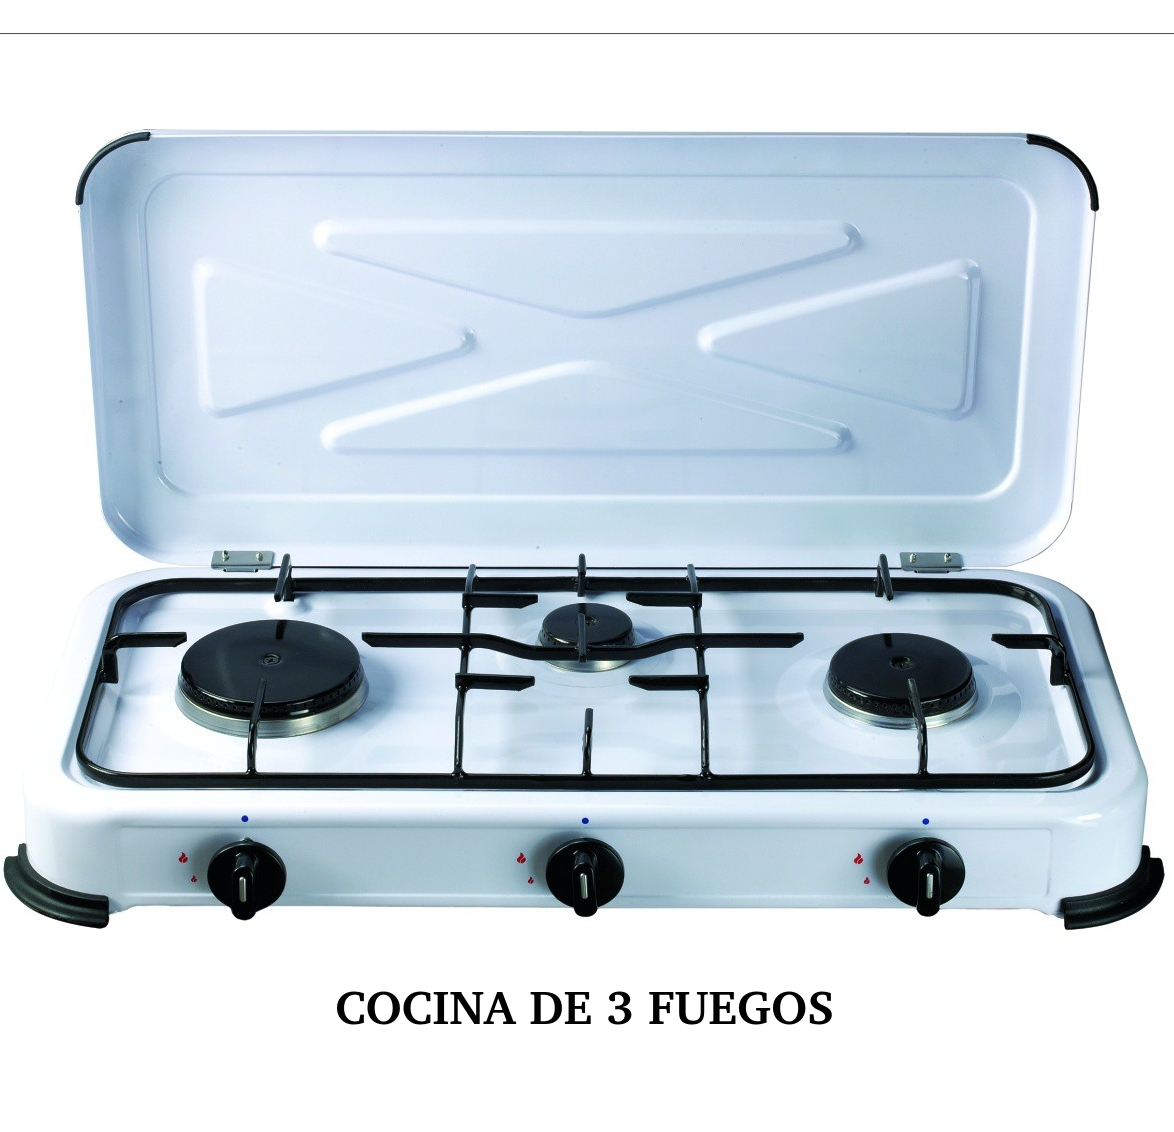 Cocina De Gas Portatil Carrefour Estufas De Gas Butano Media Markt Affordable Amazing